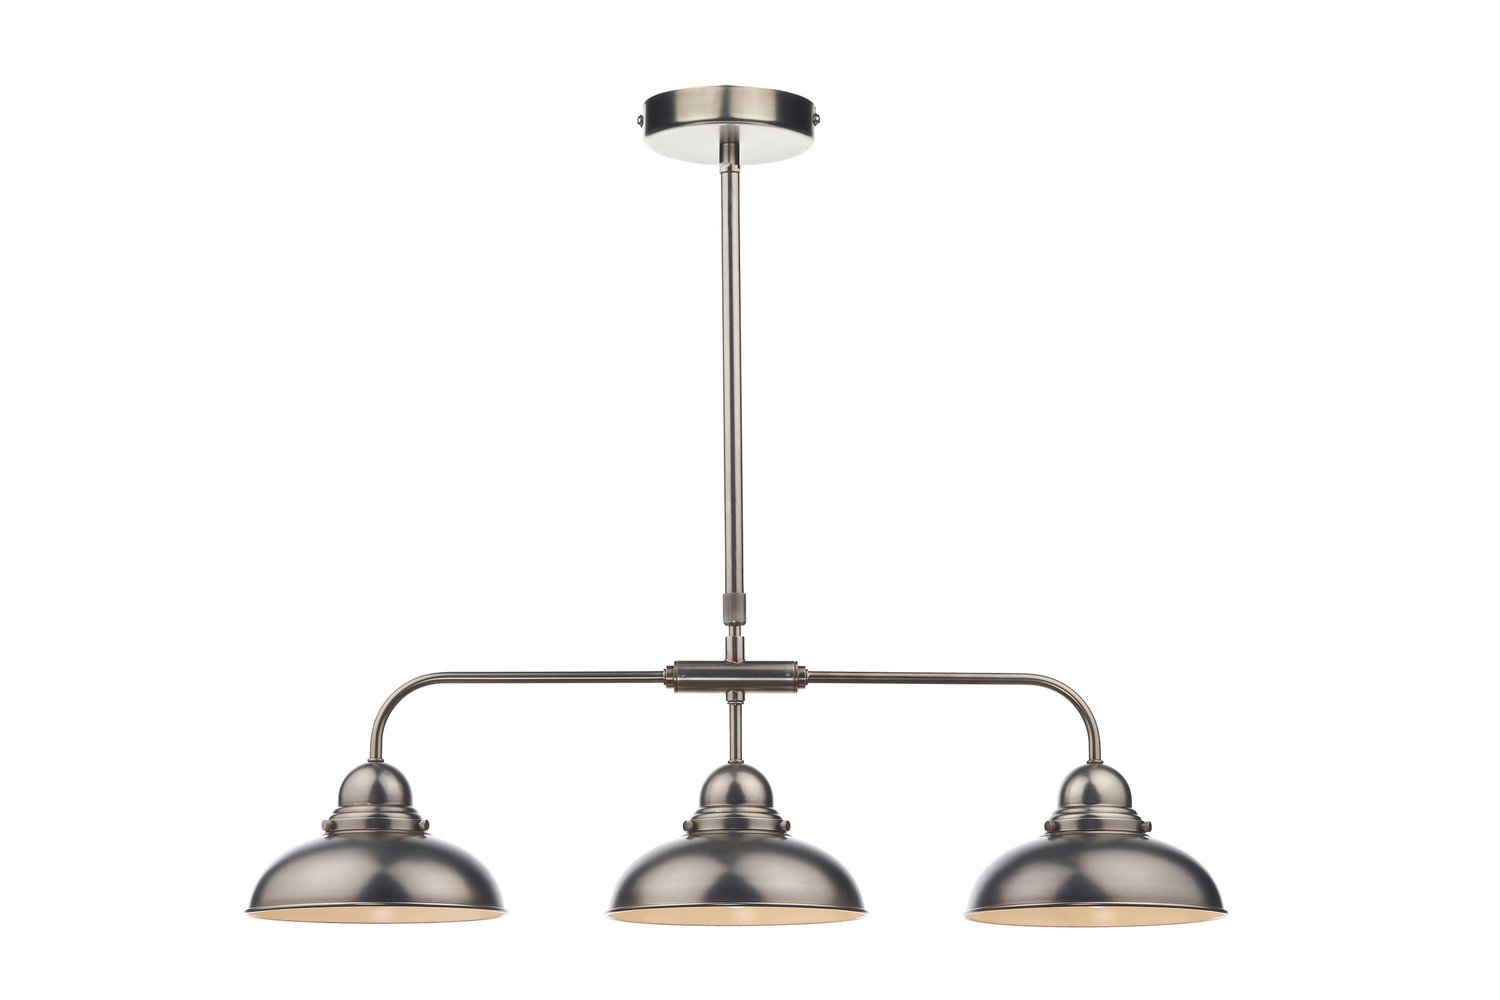 dynamo 3 light bar ceiling light pendant antique chrome by